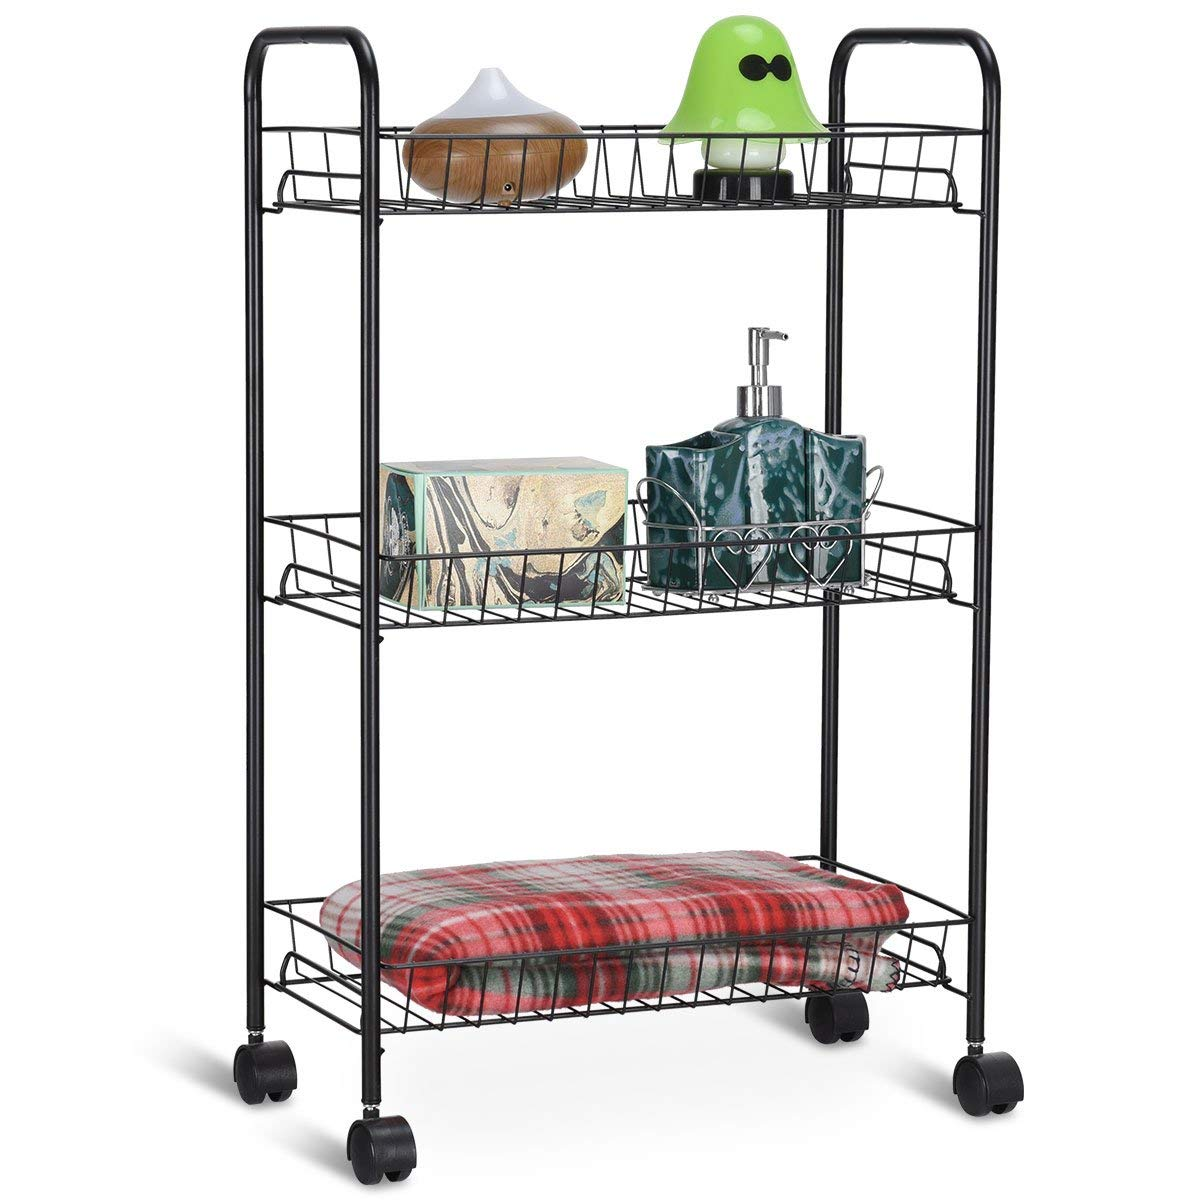 Giantex Kitchen Metal Utility Cart Rolling Wheels Shelving Tower Rack Mesh Wire Baskets Multifunctional Bathroom Kitchen Storage Unit Carts and Islands, Black (3 Tier)